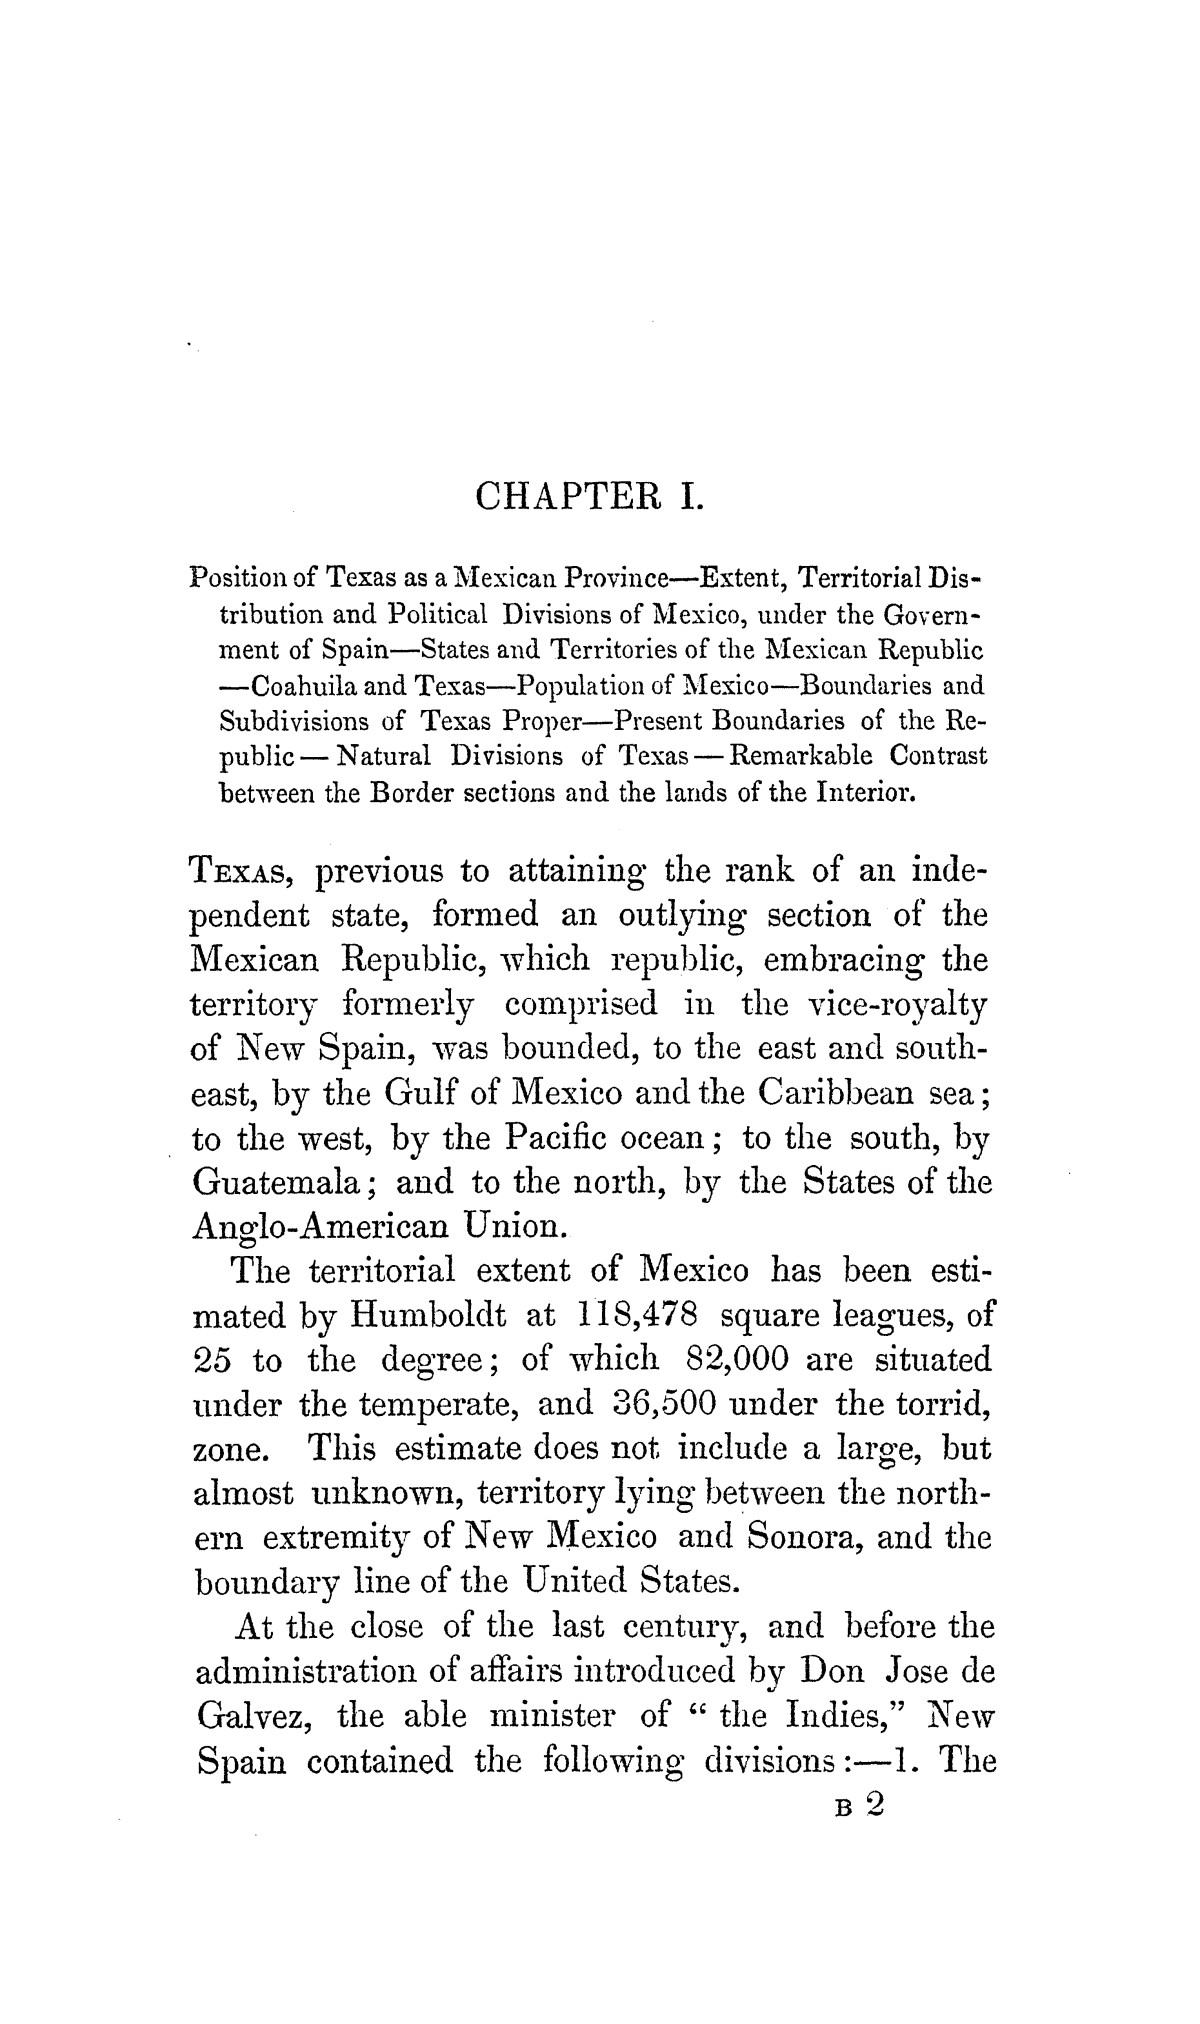 Texas: the rise, progress, and prospects of the Republic of Texas, Vol.1                                                                                                      [Sequence #]: 55 of 432